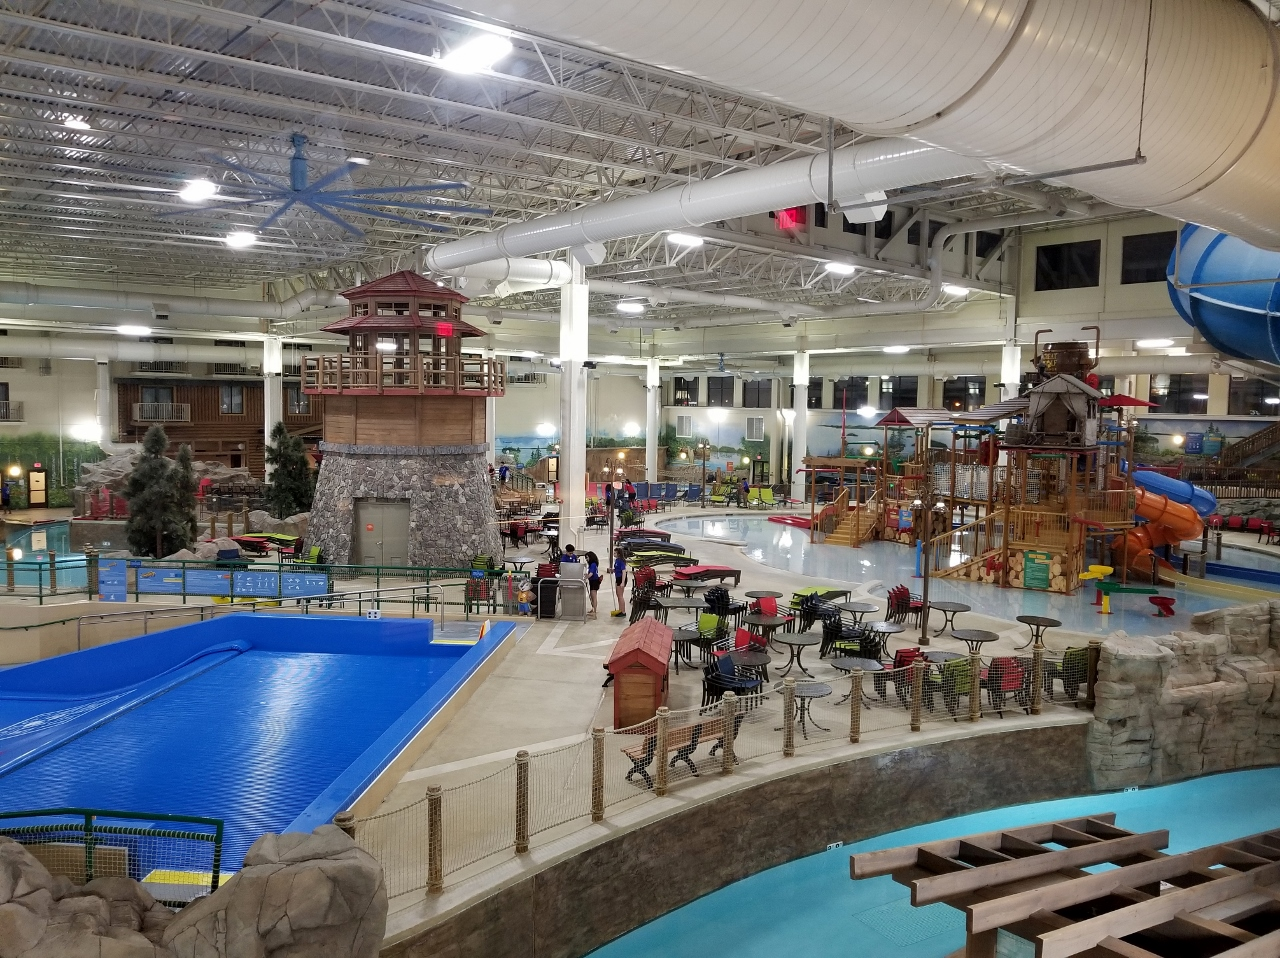 The kids area at the water park at great wolf lodge in bloomington minnesota